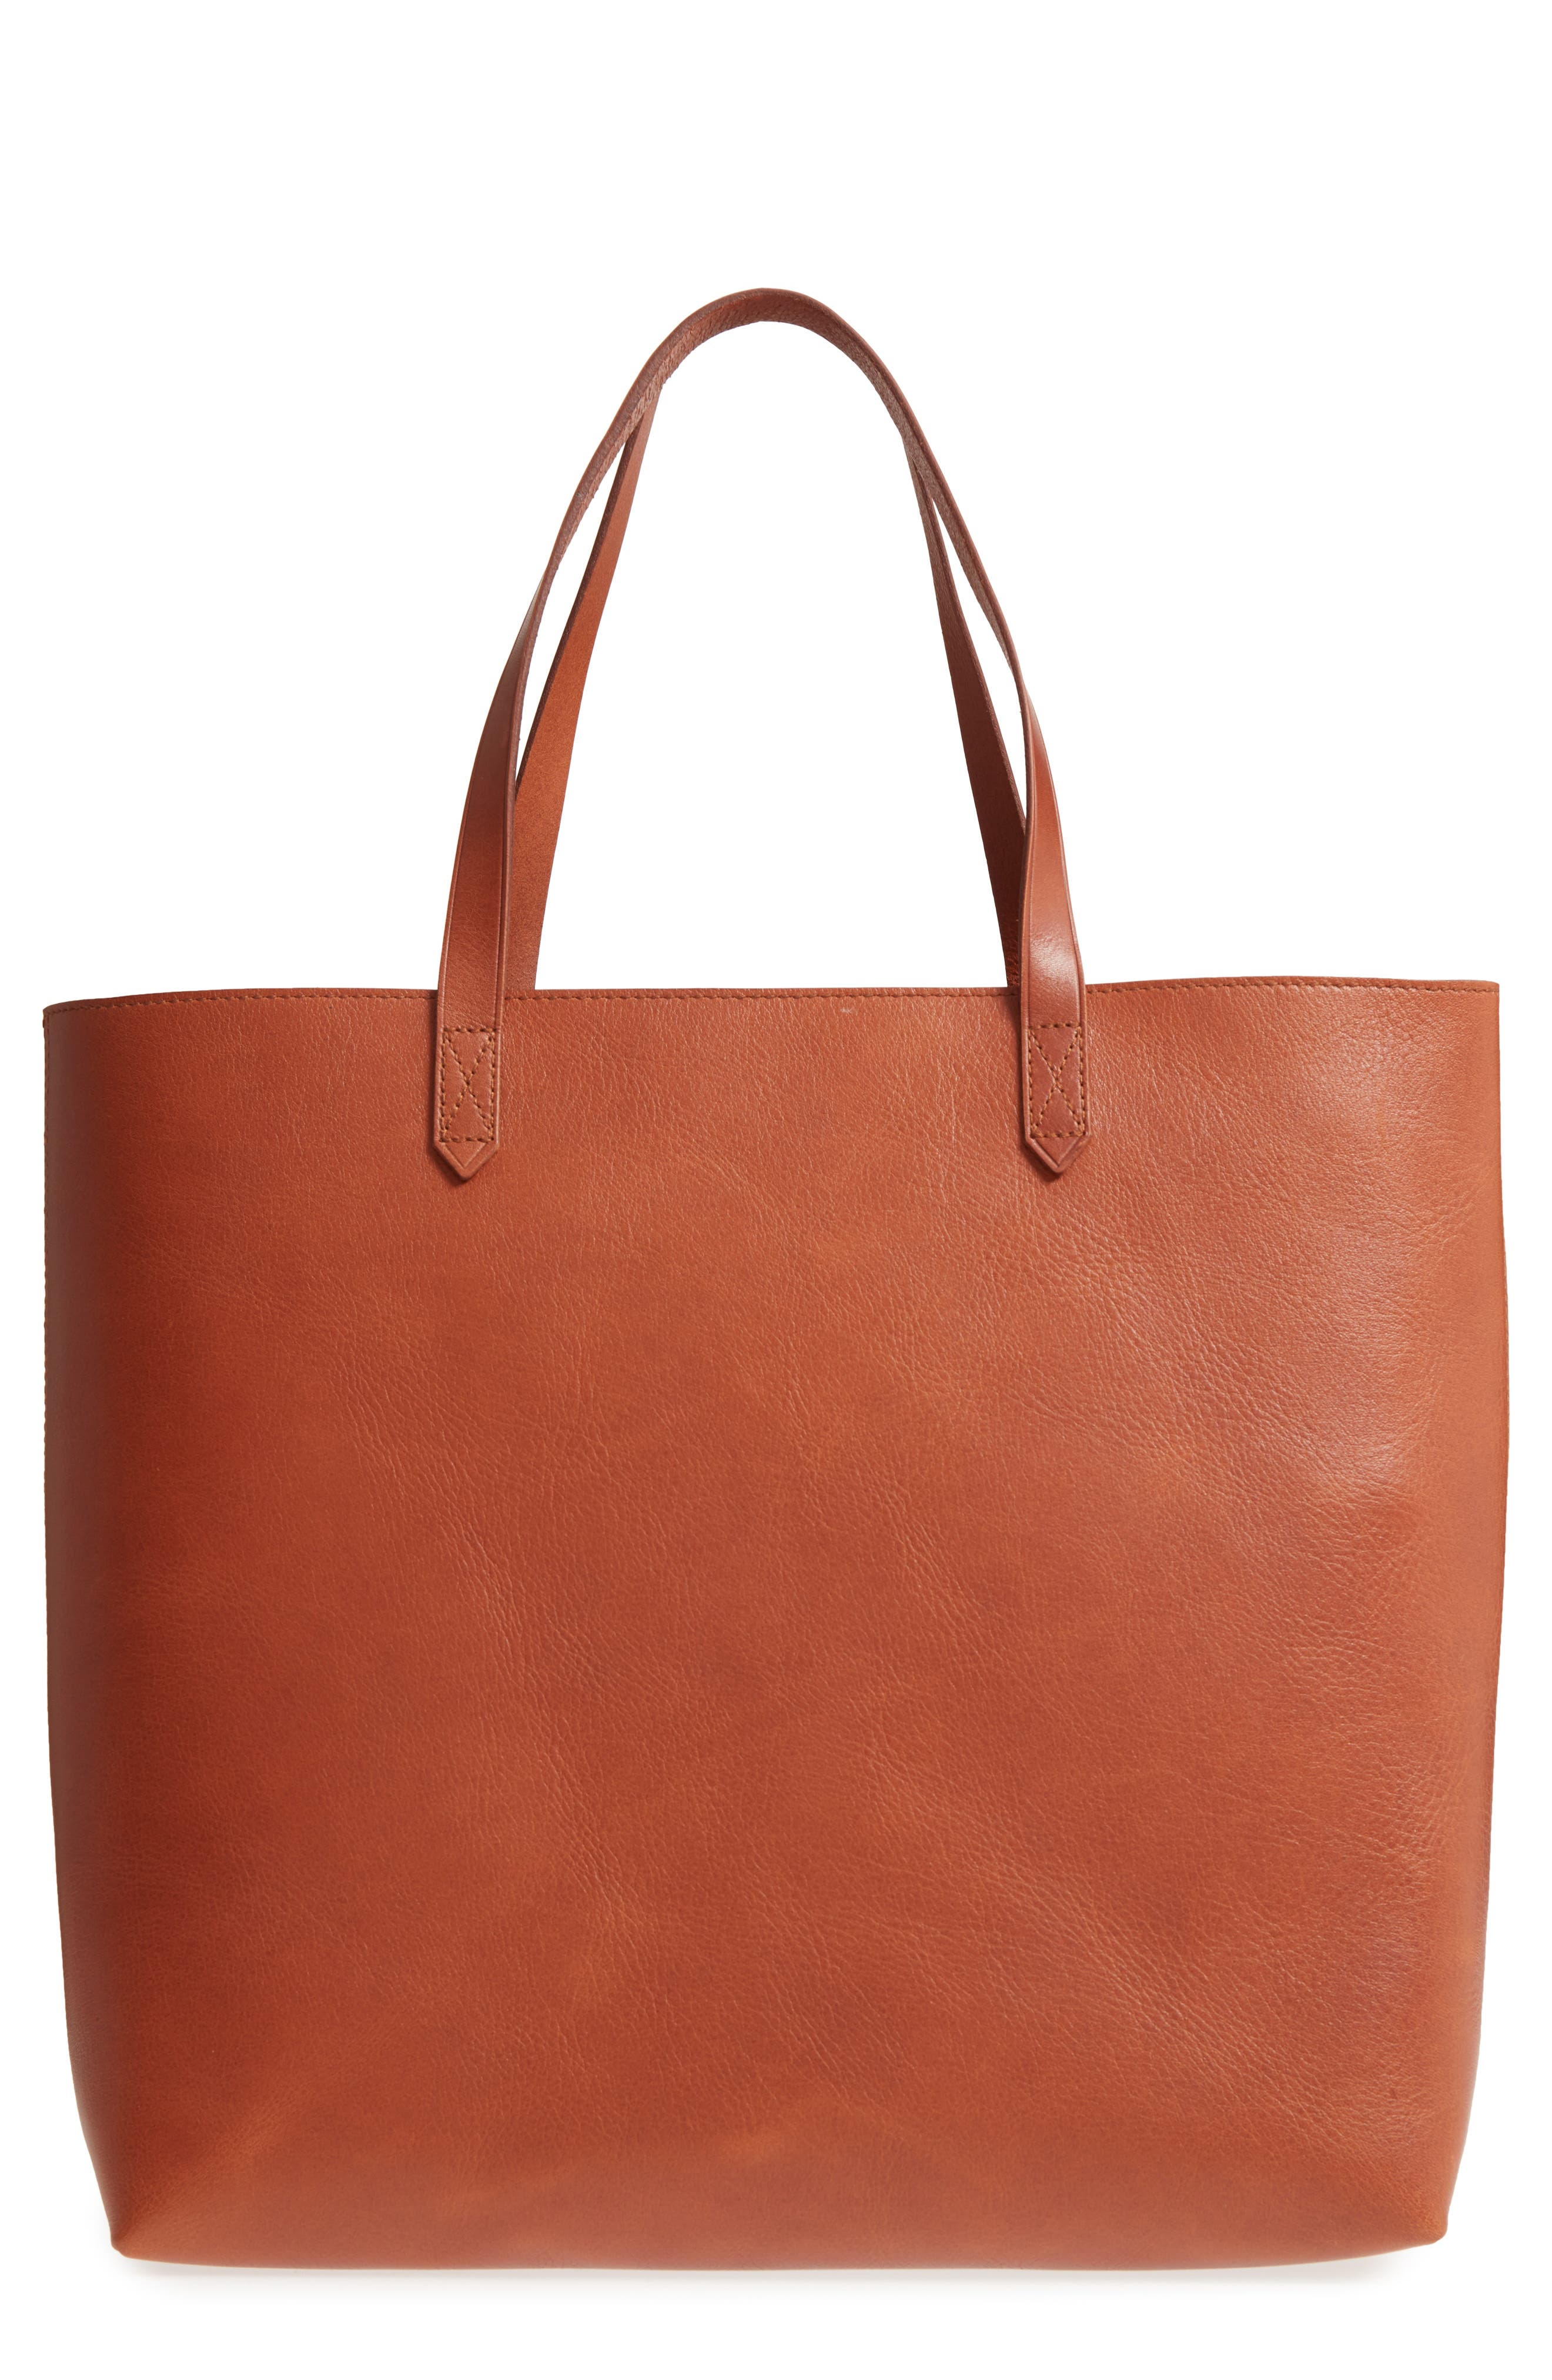 Zip Top Transport Leather Tote,                             Main thumbnail 1, color,                             English Saddle